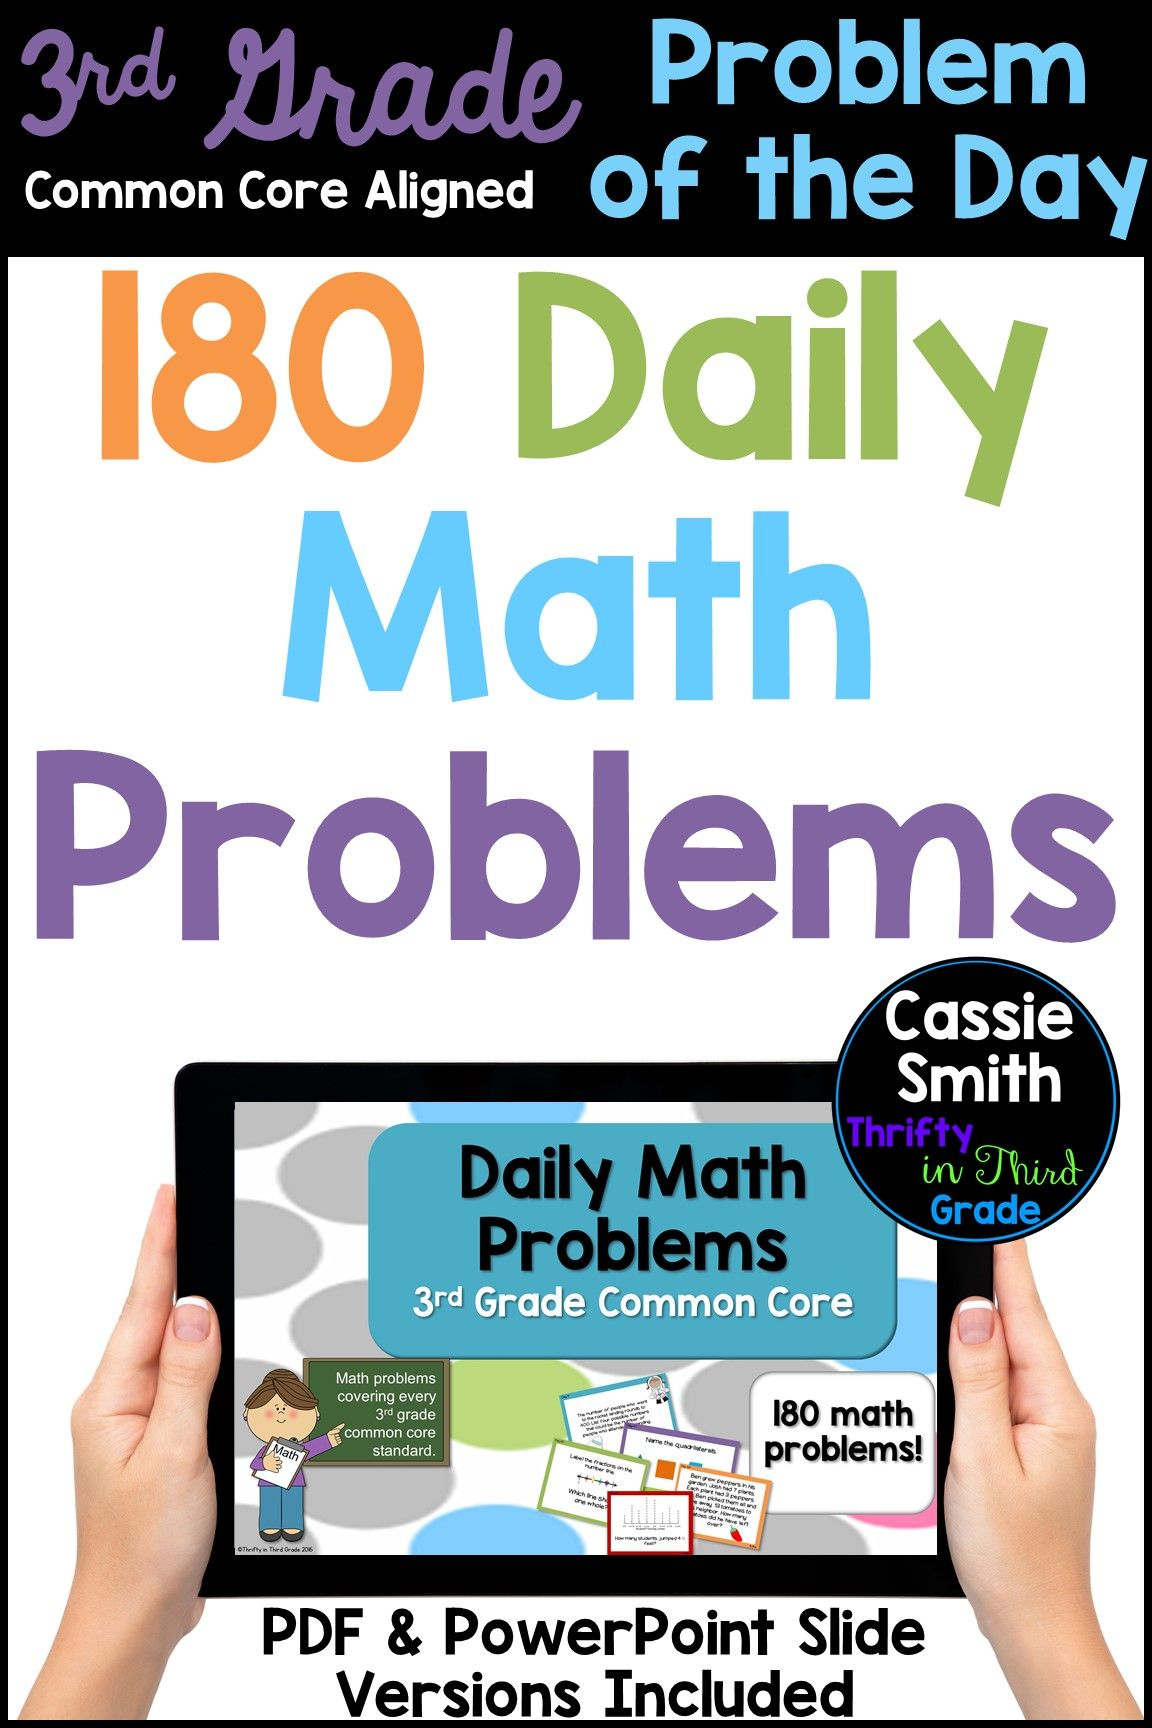 3rd Grade Daily Common Core Math Problems In